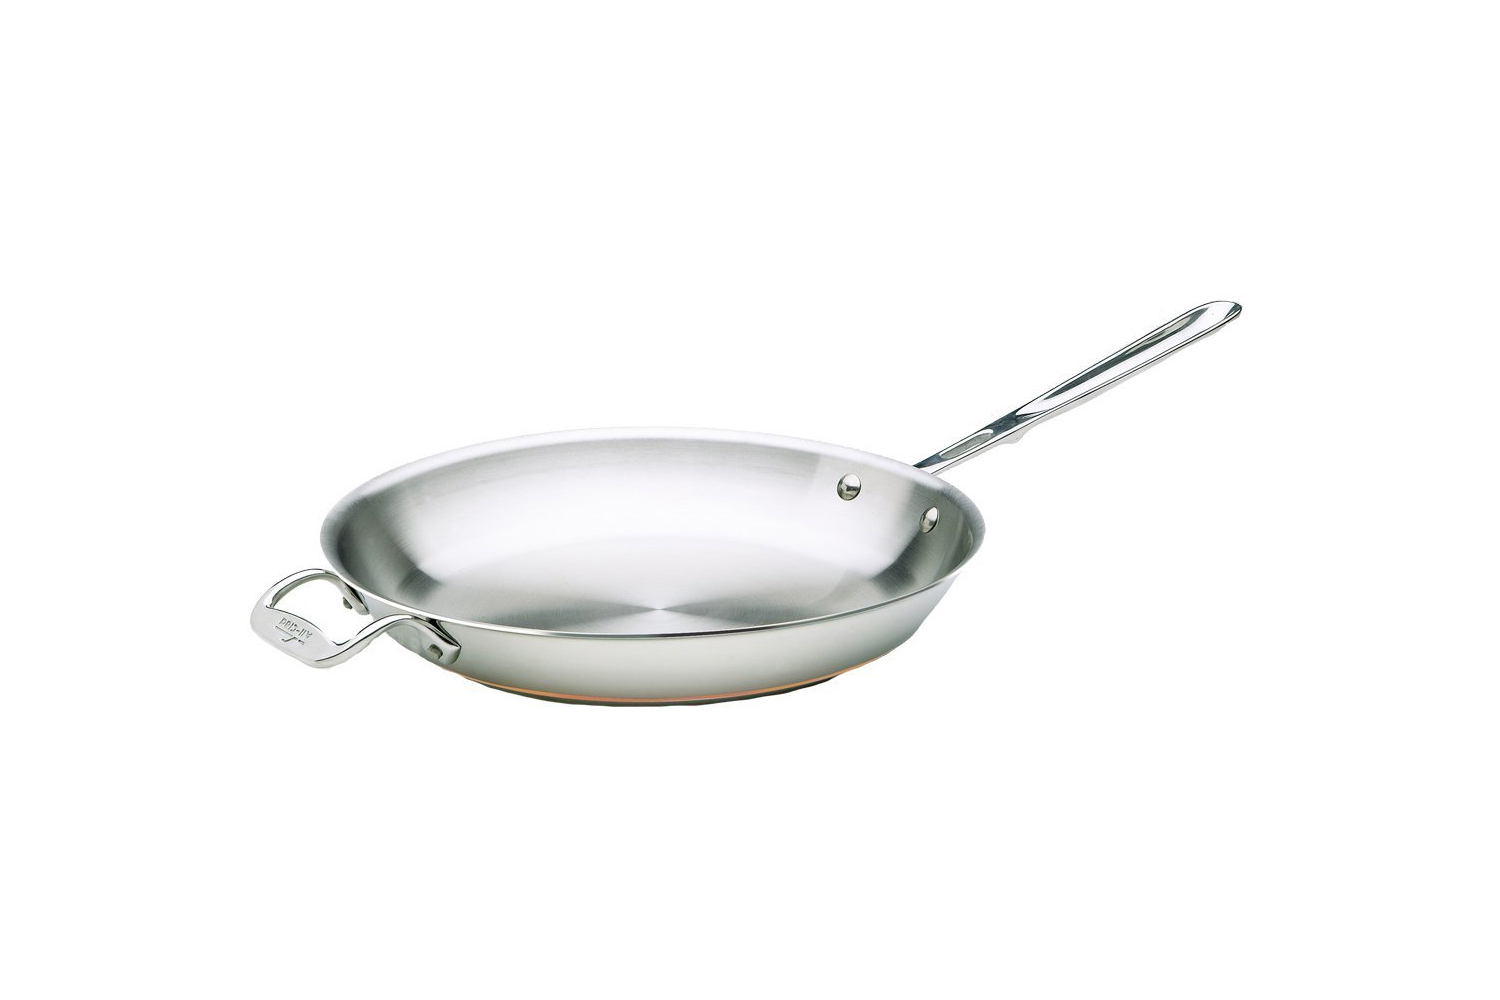 All-Clad Copper-Core 12 inch Fry Pan